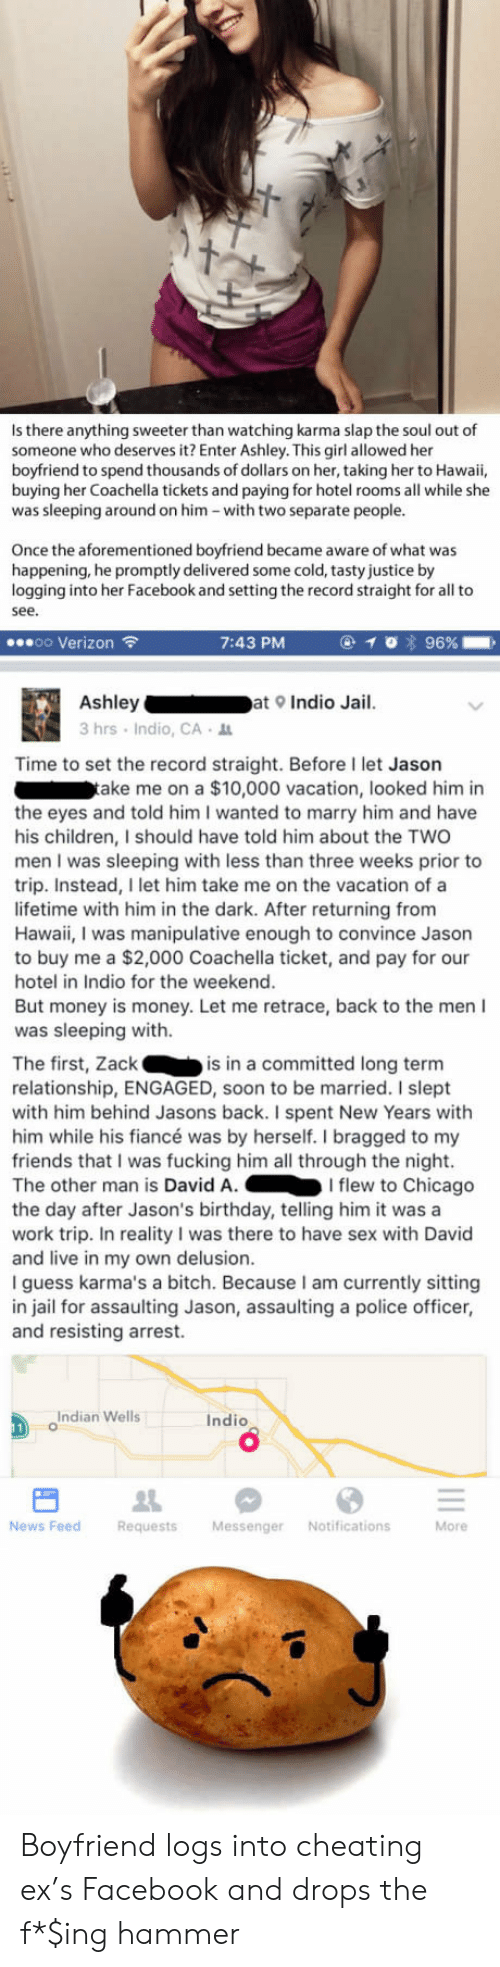 Delusion: Is there anything sweeter than watching karma slap the soul out of  someone who deserves it? Enter Ashley. This girl allowed her  boyfriend to spend thousands of dollars on her, taking her to Hawaii,  buying her Coachella tickets and paying for hotel rooms all while she  was sleeping around on him -with two separate people.  Once the aforementioned boyfriend became aware of what was  happening, he promptly delivered some cold, tasty justice by  logging into her Facebook and setting the record straight for all to  see  oo Verizon  7:43 PM  Ashleyat Indio Jail.  3hrs Indio, CA  Time to set the record straight. Before I let Jason  ake me on a $10,000 vacation, looked him in  the eyes and told him I wanted to marry him and have  his children, I should have told him about the TWO  men I was sleeping with less than three weeks prior to  trip. Instead, I let him take me on the vacation of a  lifetime with him in the dark. After returning from  Hawaii, I was manipulative enough to convince Jason  to buy me a $2,000 Coachella ticket, and pay for our  hotel in Indio for the weekend  But money is money. Let me retrace, back to the men I  was sleeping with.  The first, Zackis in a committed long term  relationship, ENGAGED, soon to be married. I slept  with him behind Jasons back. I spent New Years with  him while his fiancé was by herself. I bragged to my  friends that I was fucking him all through the night.  The other man is David A.I flew to Chicago  the day after Jason's birthday, telling him it wasa  work trip. In reality I was there to have sex with David  and live in my own delusion.  I guess karma's a bitch. Because I am currently sitting  in jail for assaulting Jason, assaulting a police officer,  and resisting arrest.  Indian Wells  Indio  0  News Feed  Requests MessengerNotifications  More Boyfriend logs into cheating ex's Facebook and drops the f*$ing hammer